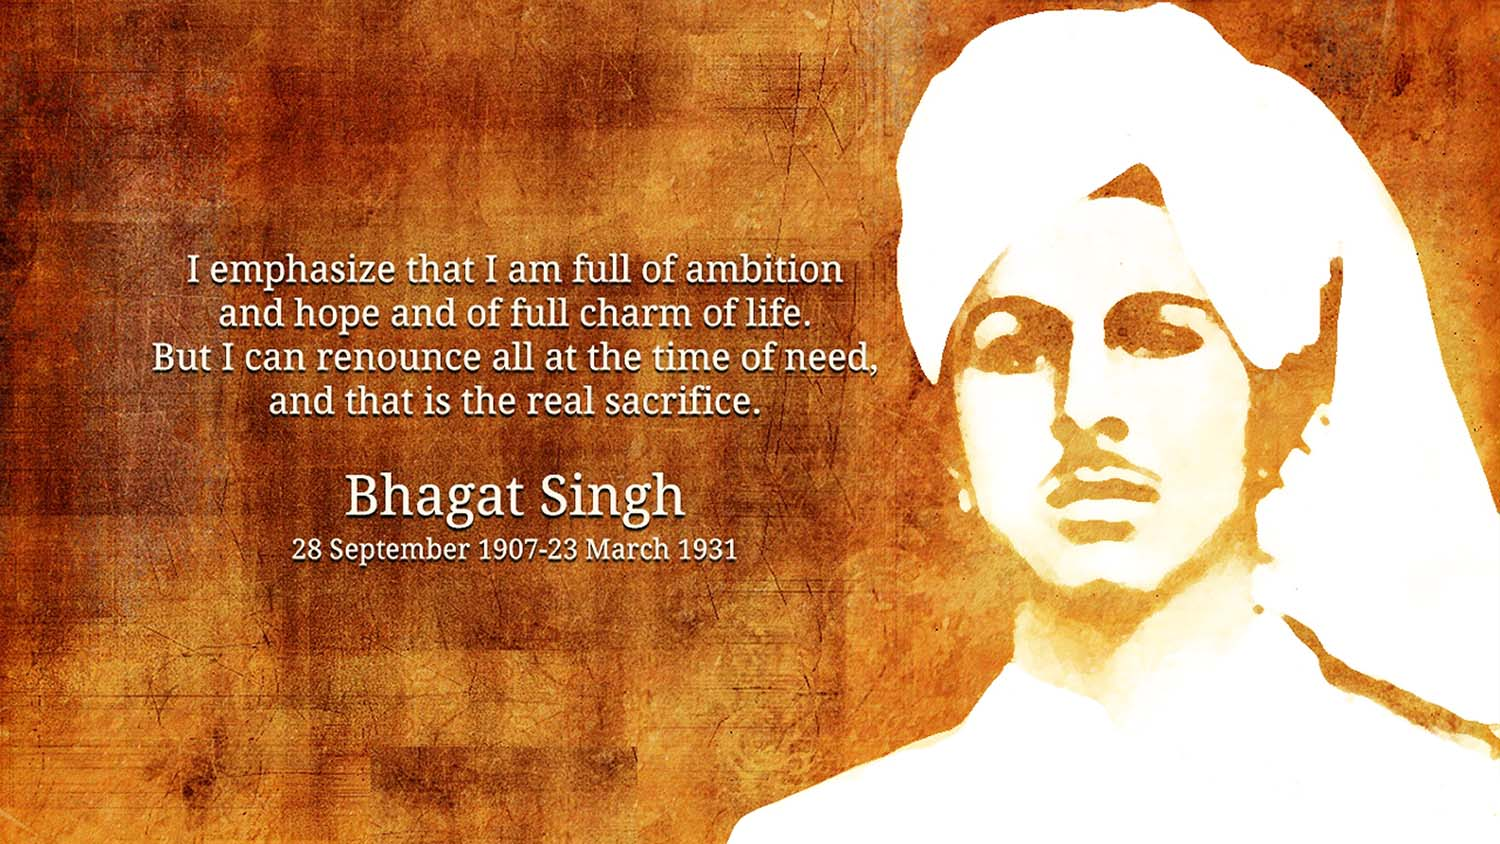 bhagat singh photos & wallpapers